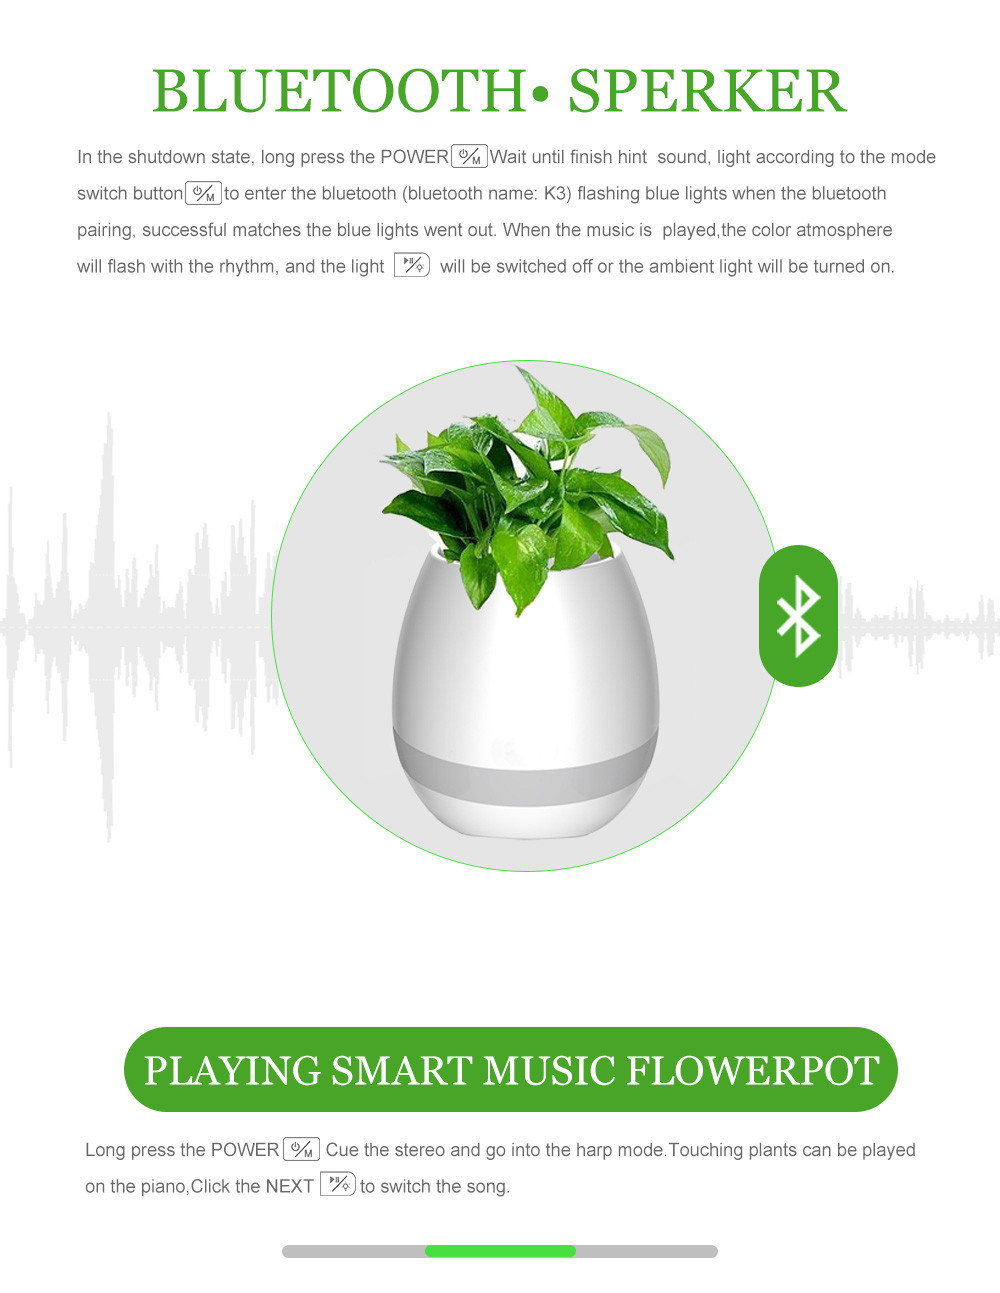 New 2017 Bluetooth Smart Music flowerpot Speaker Intelligent Touch Plant Piano Music Flower Pot with colorful LED Night Light